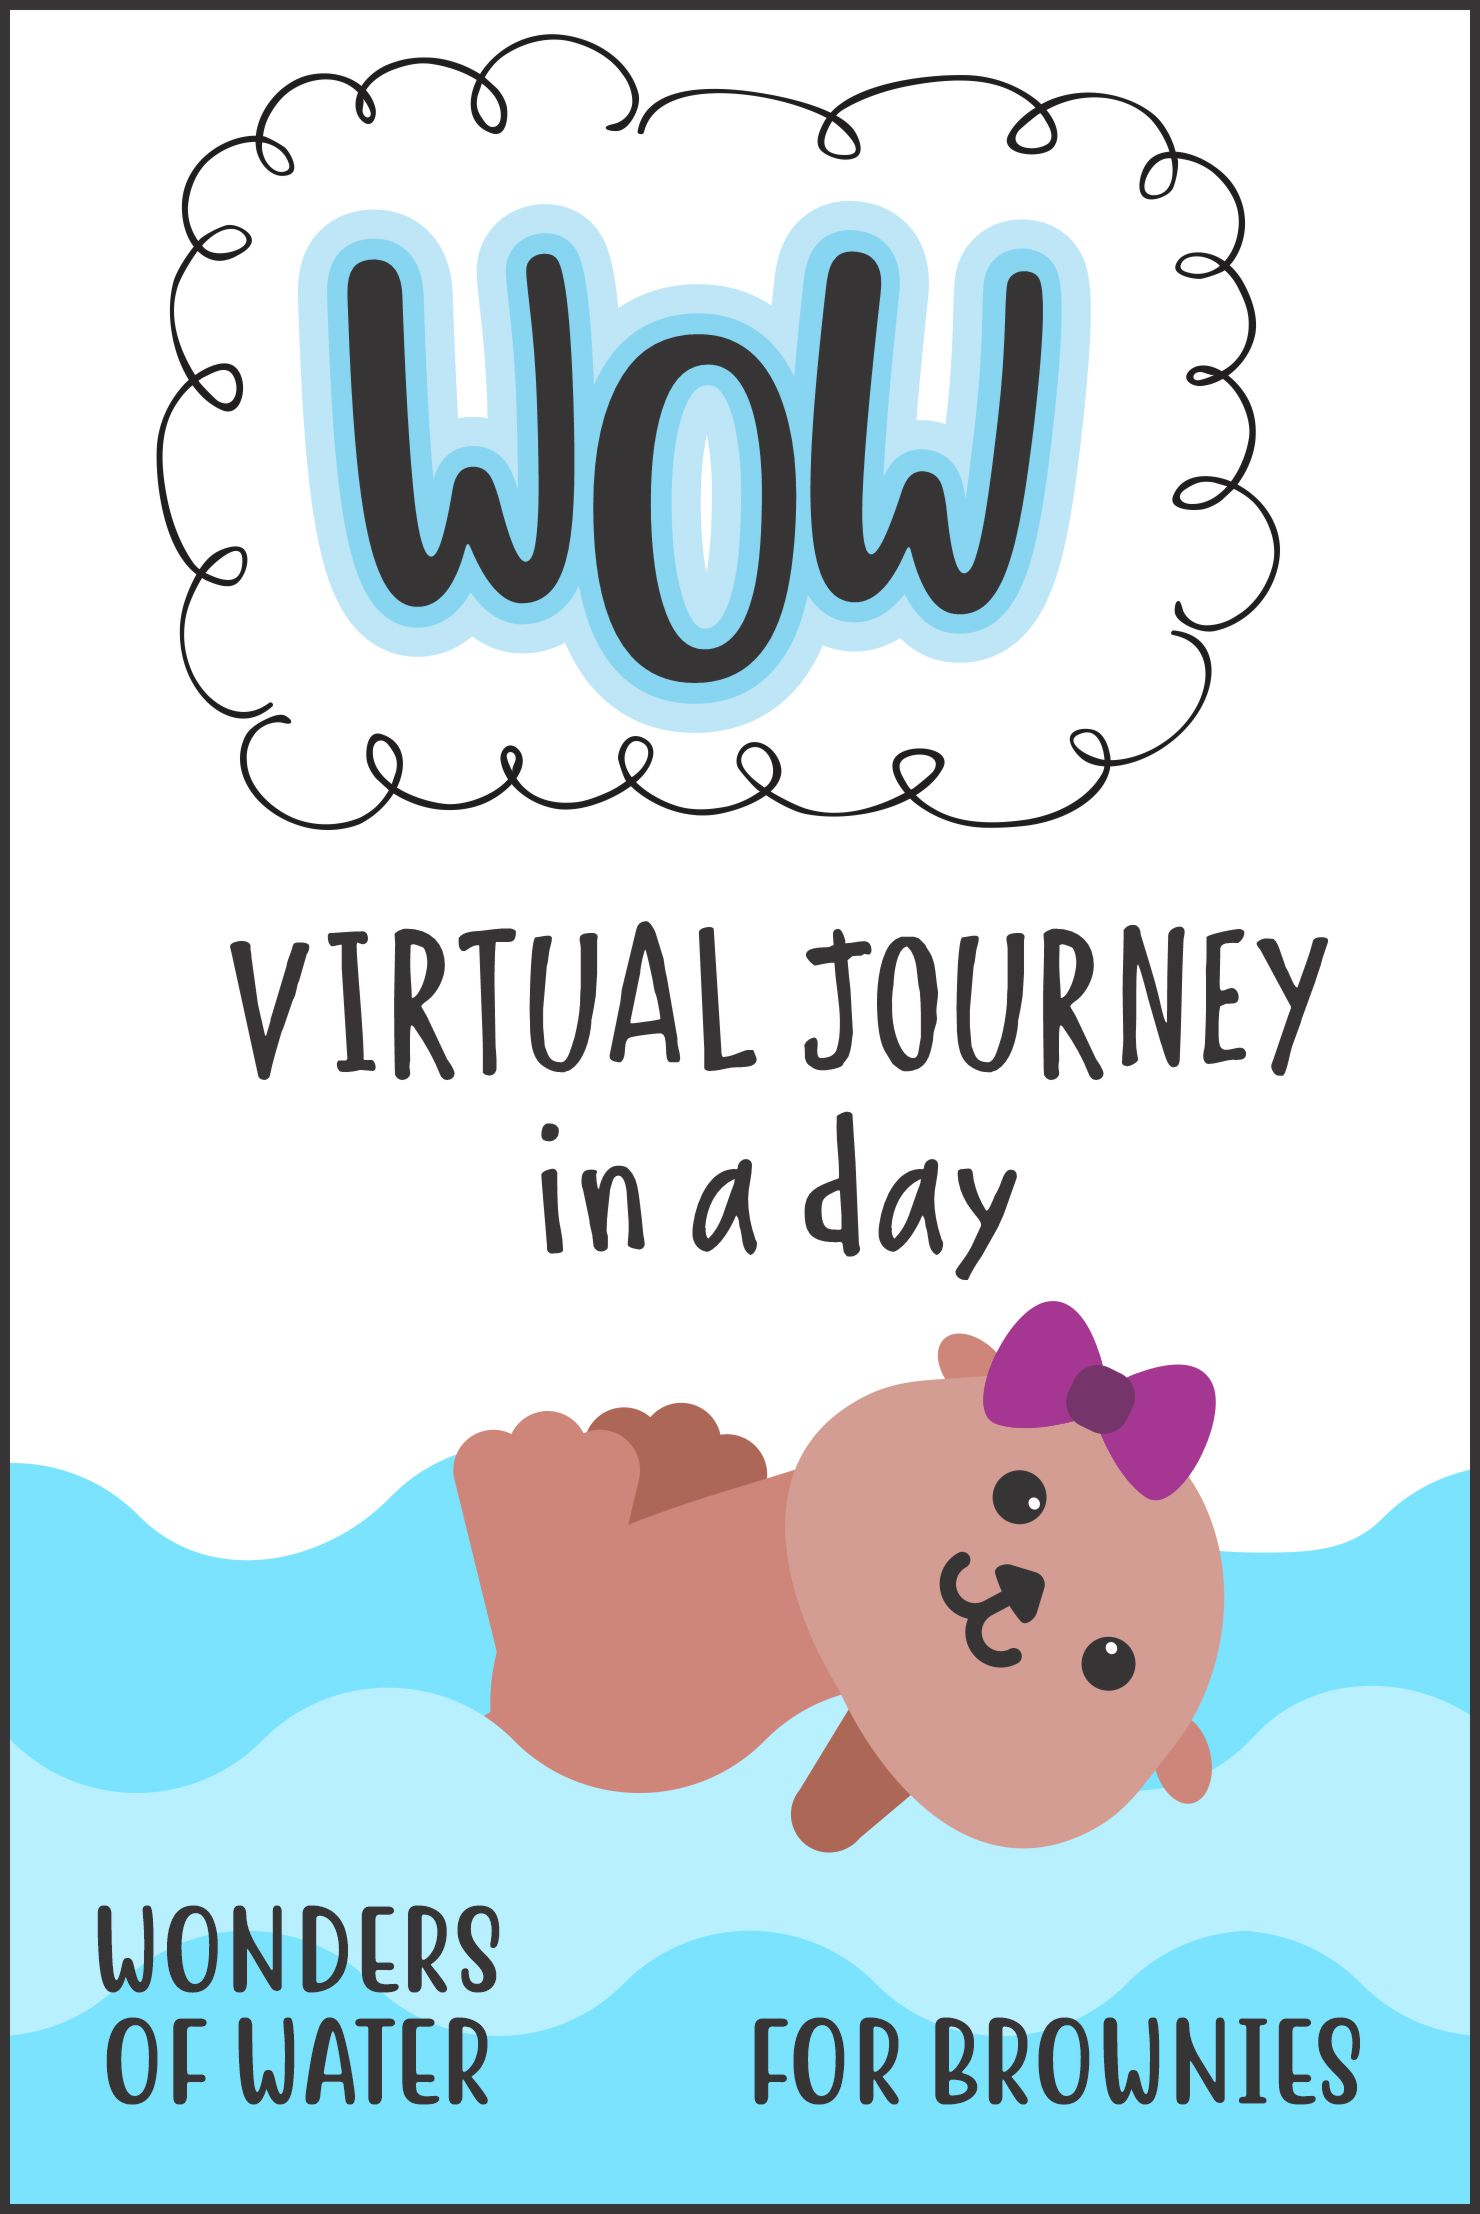 """One hour workshop presented by MakingFriends. Brownies will take an adventure with Bubbles and Miss Jackie to complete the """"WOW Journey""""! #girlscouts #onlineclass #virtualclass #wowjourney #gsjourneys #girlscoutjourney #waterjourney #browniejourney via @gsleader411"""